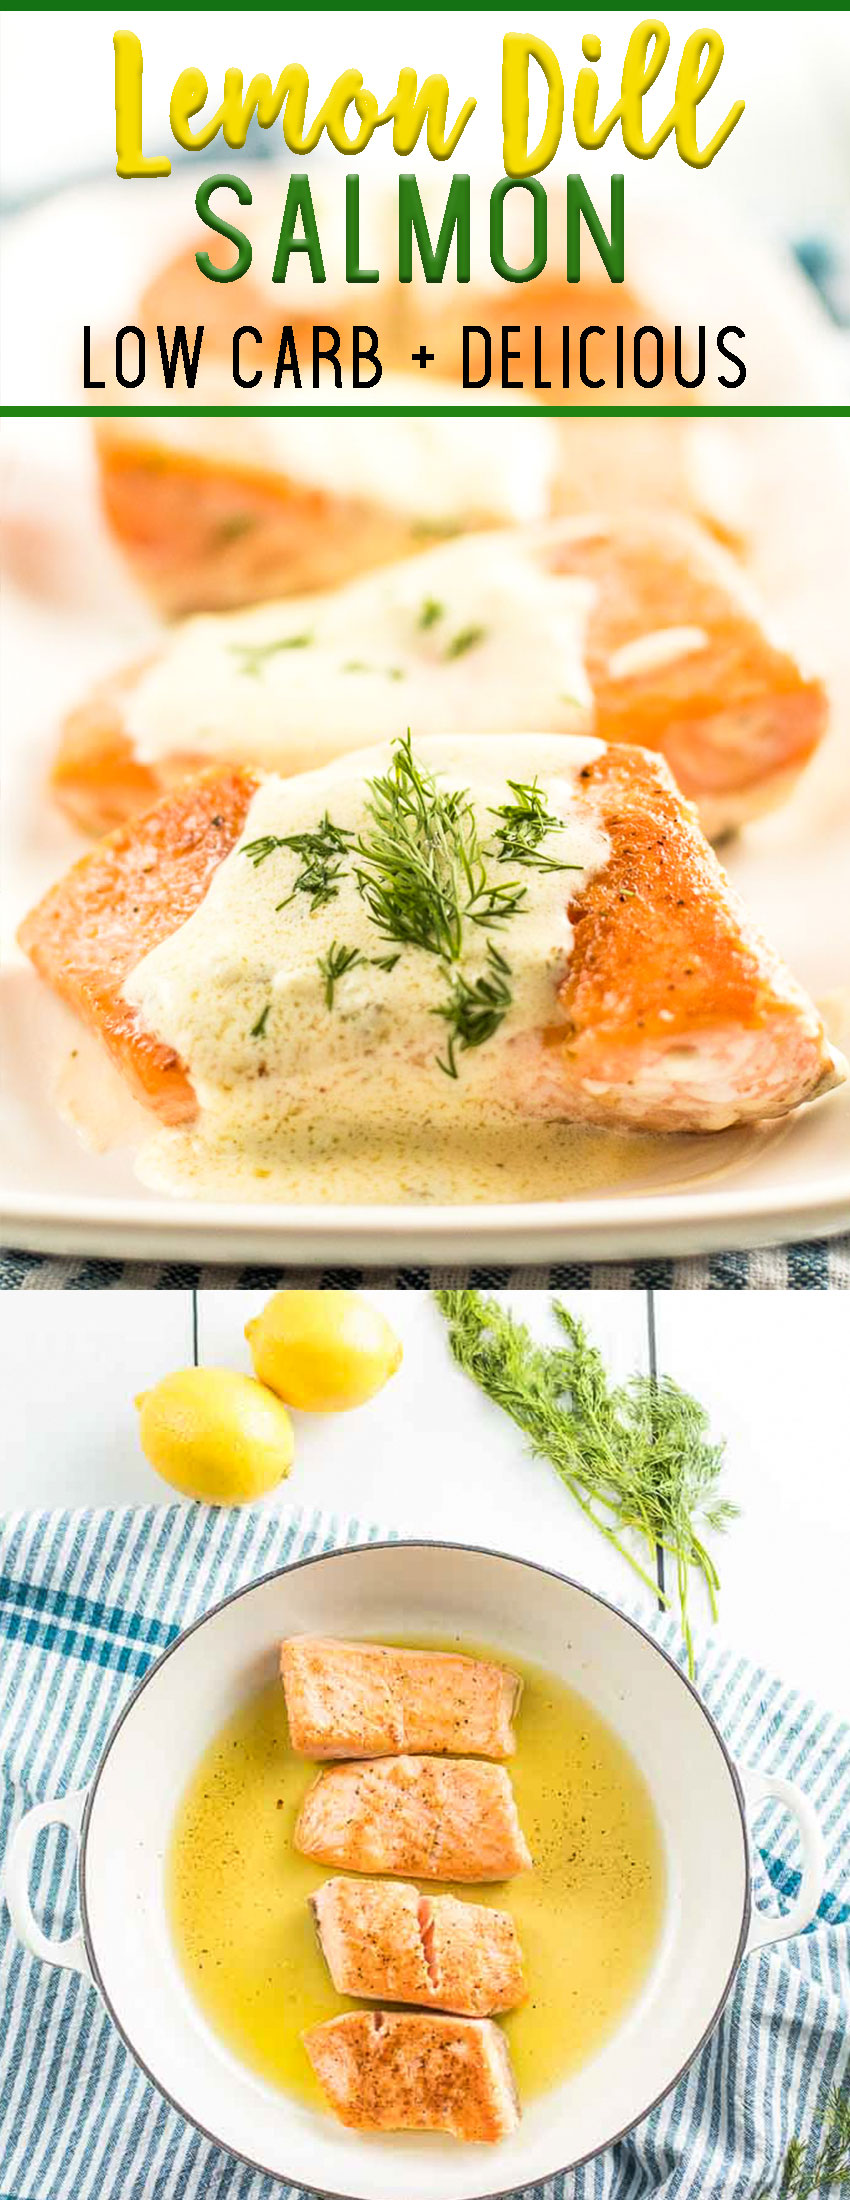 Lemon Dill Salmon, low carb salmon recipe that is so delicious